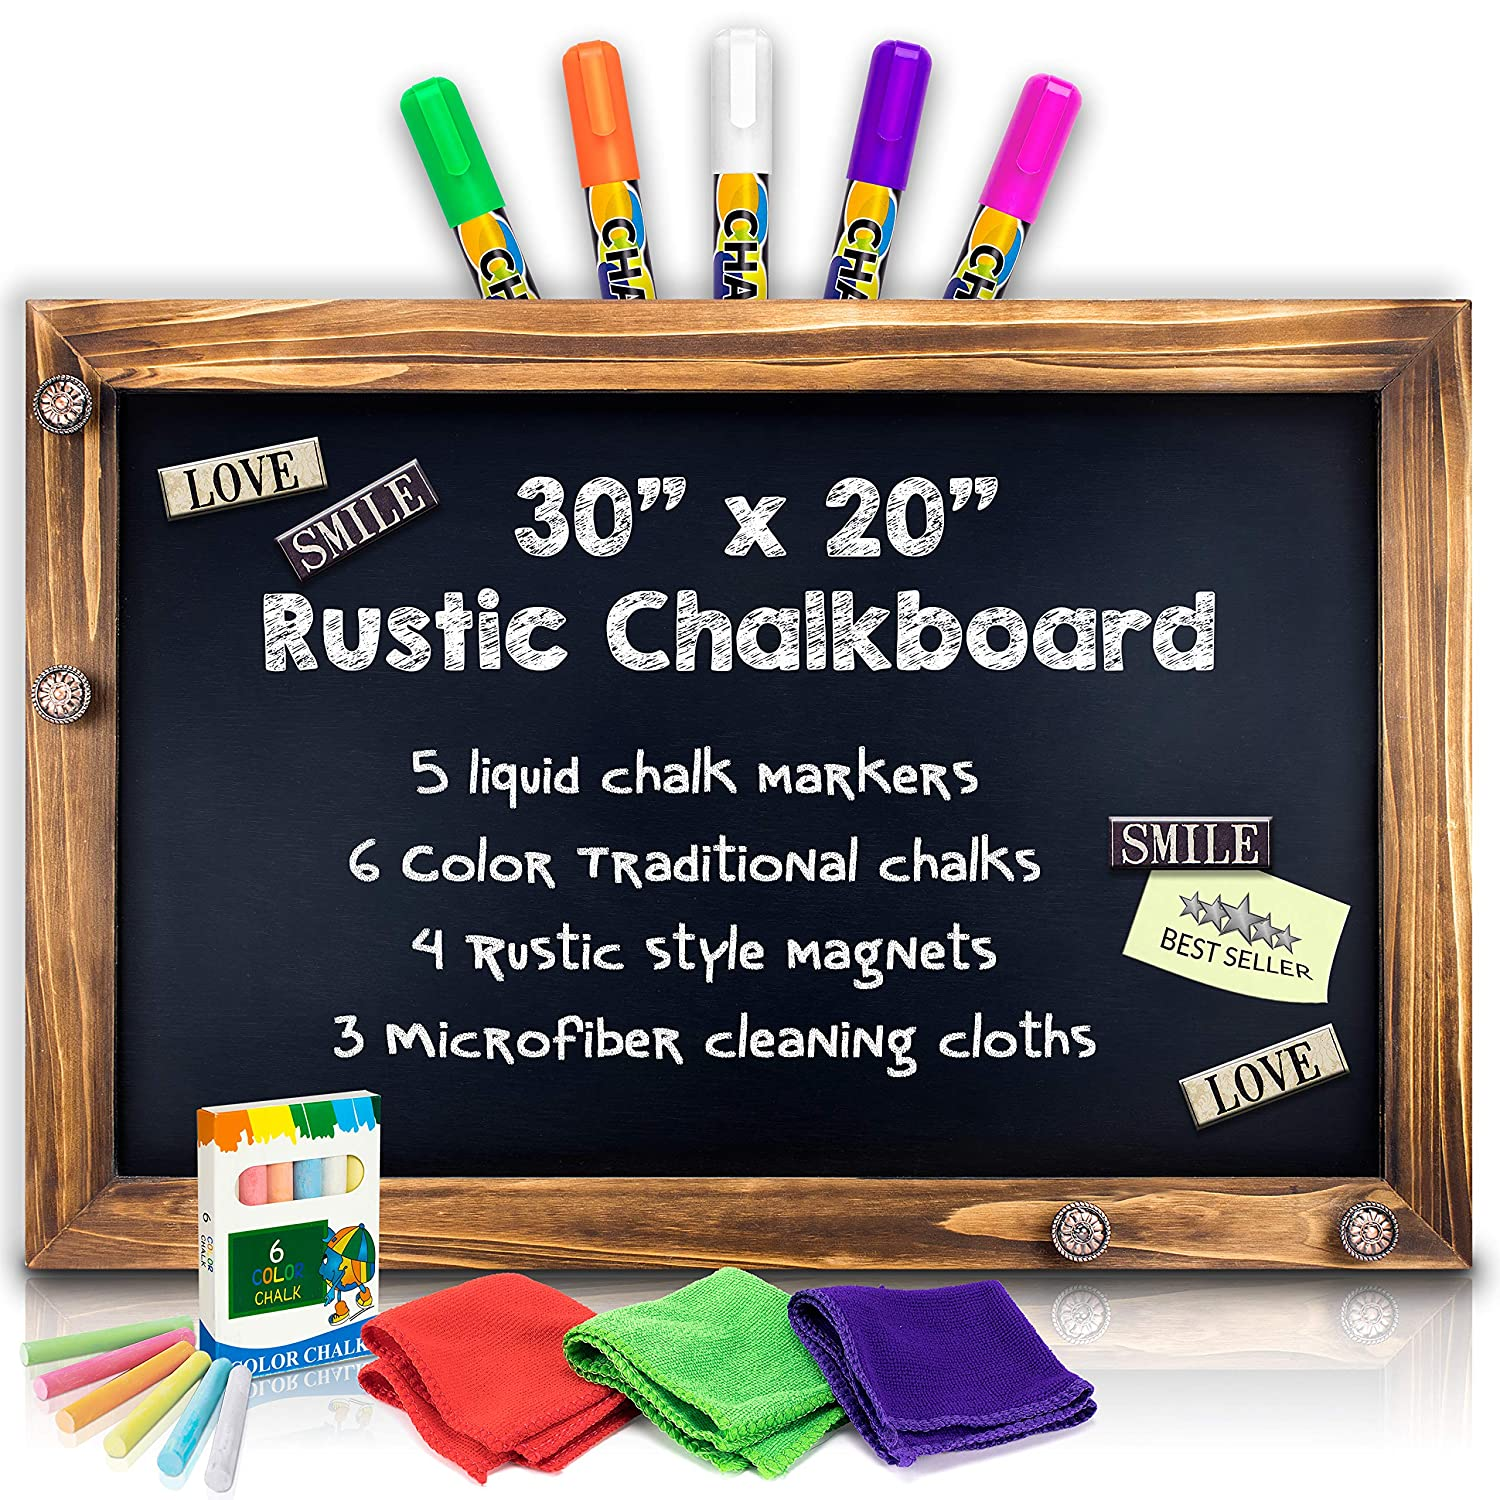 "Shefio Large Framed Chalkboard Sign - Wall Hanging Magnetic Blackboard with Rustic Handmade ""Burnt"" Wood Frame. For Home or Business. 20x30 Inches - Lots of Free Bonus Accessories"